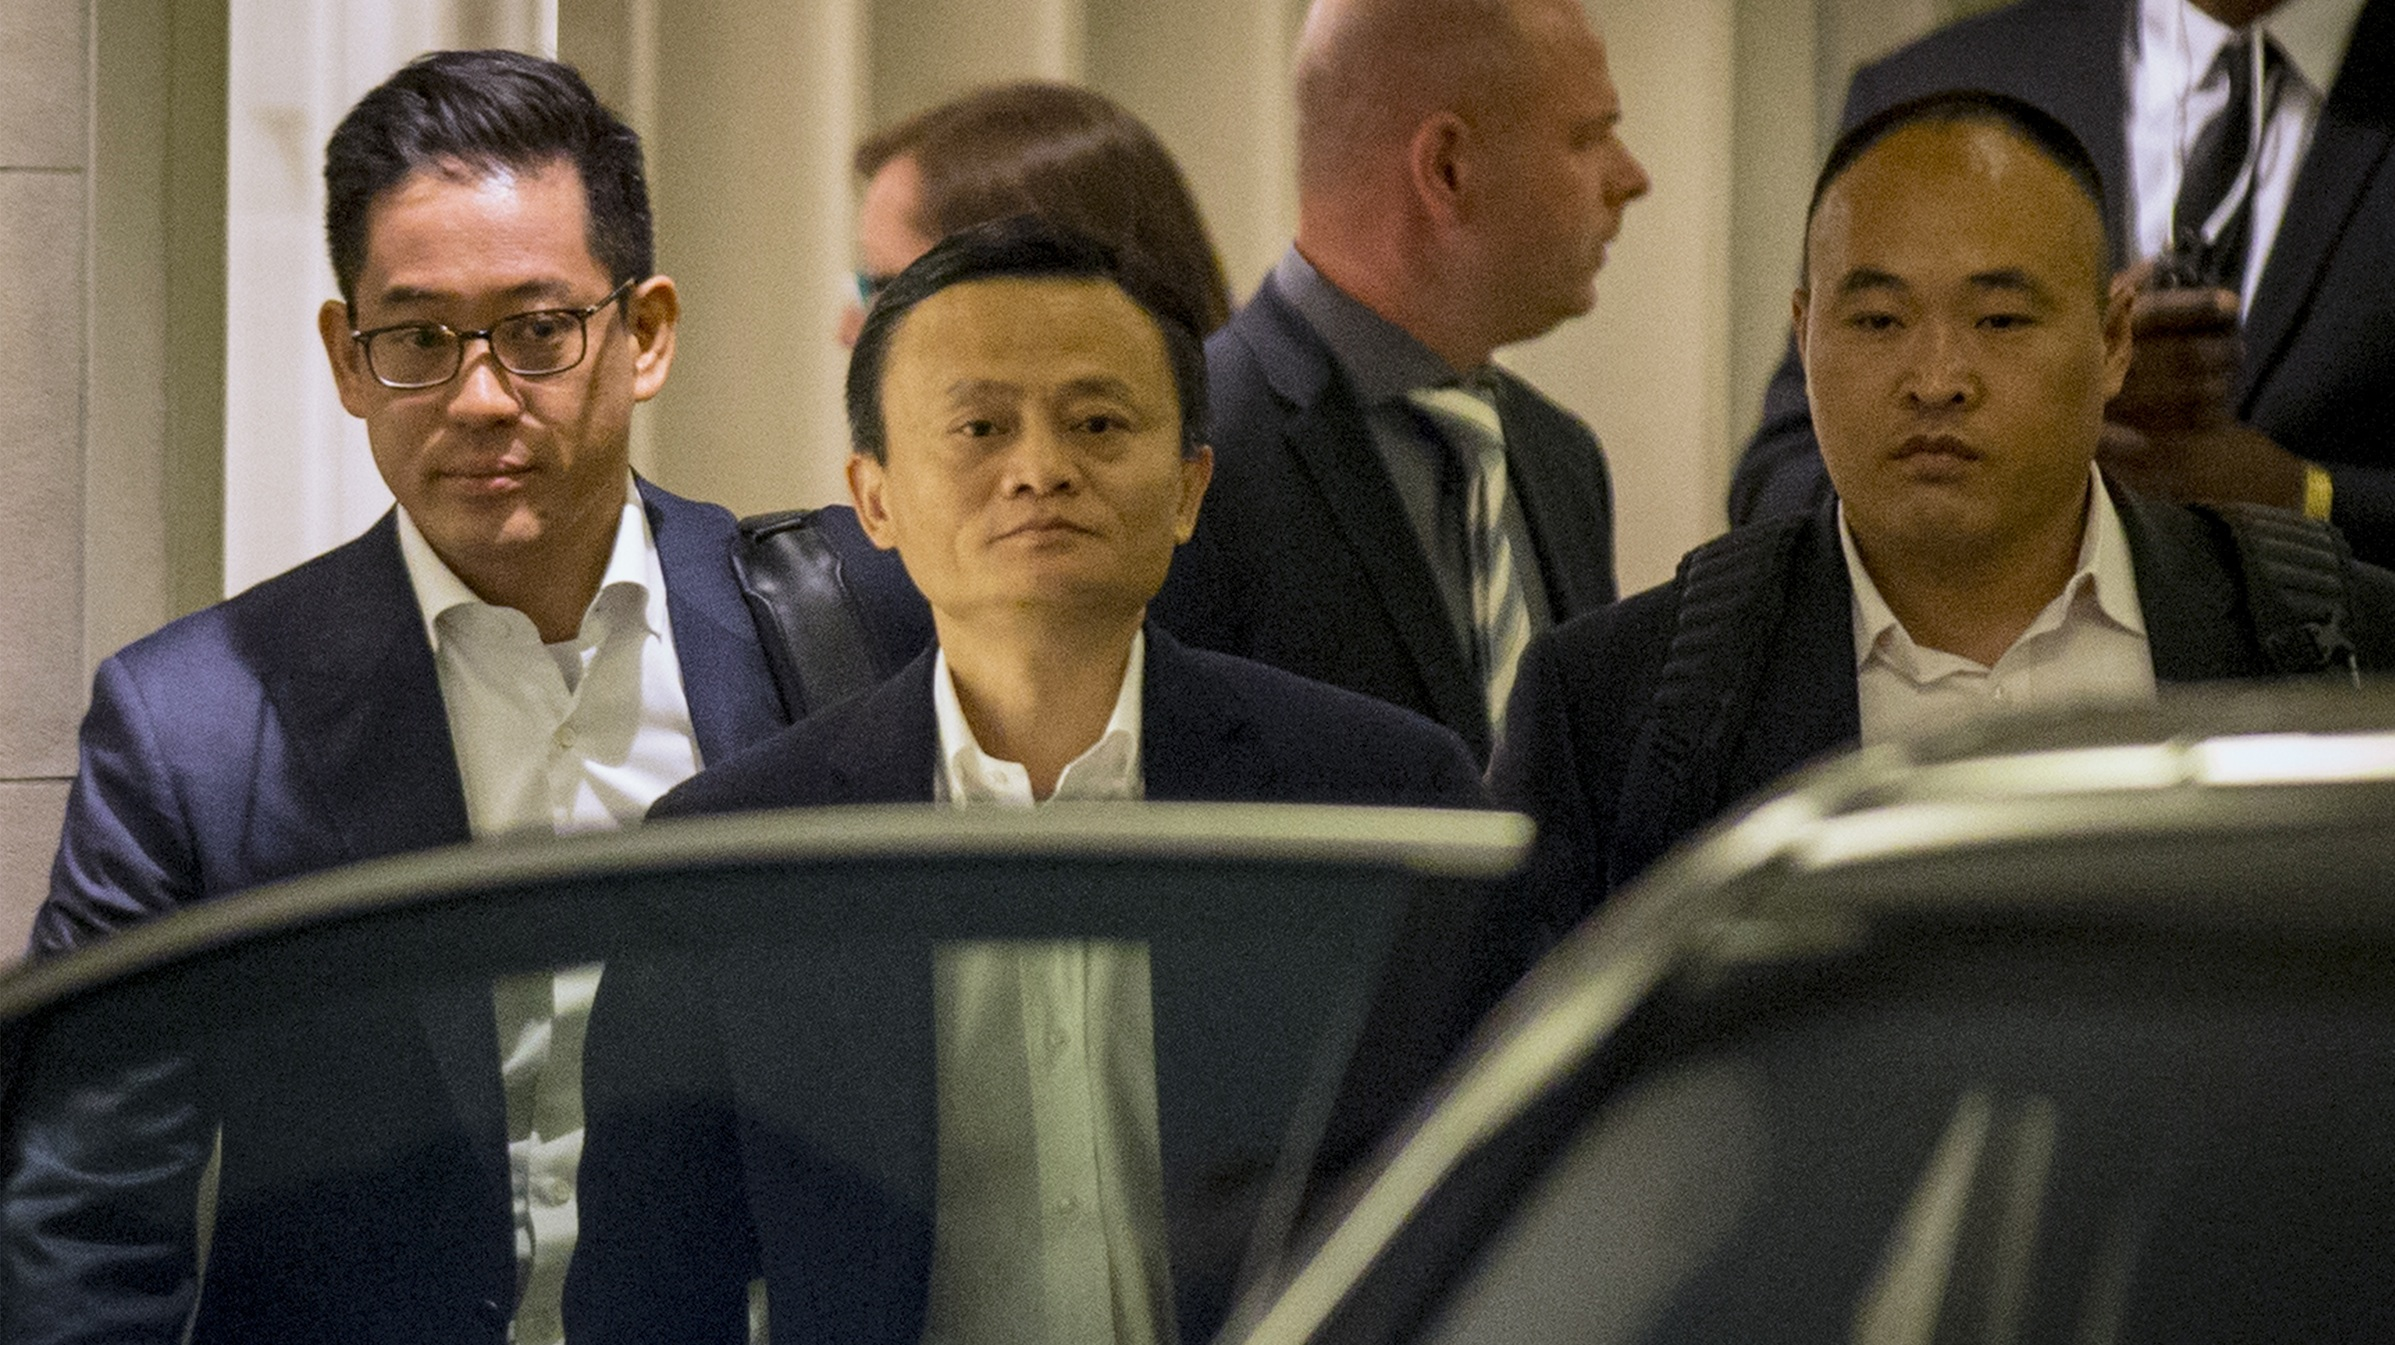 Jack Ma, the founder and executive chairman of Alibaba Group Holding, leaves following the company's road show in New York September 8, 2014. Hundreds of hedge funds, mutual funds and other institutional investors lined up on Monday to hear Alibaba Group Holding Ltd's management pitch the company's shares, as the Chinese e-commerce giant kicked off a two-week IPO marketing blitz.  REUTERS/Brendan McDermid (UNITED STATES - Tags: BUSINESS TPX IMAGES OF THE DAY) - RTR45F5S